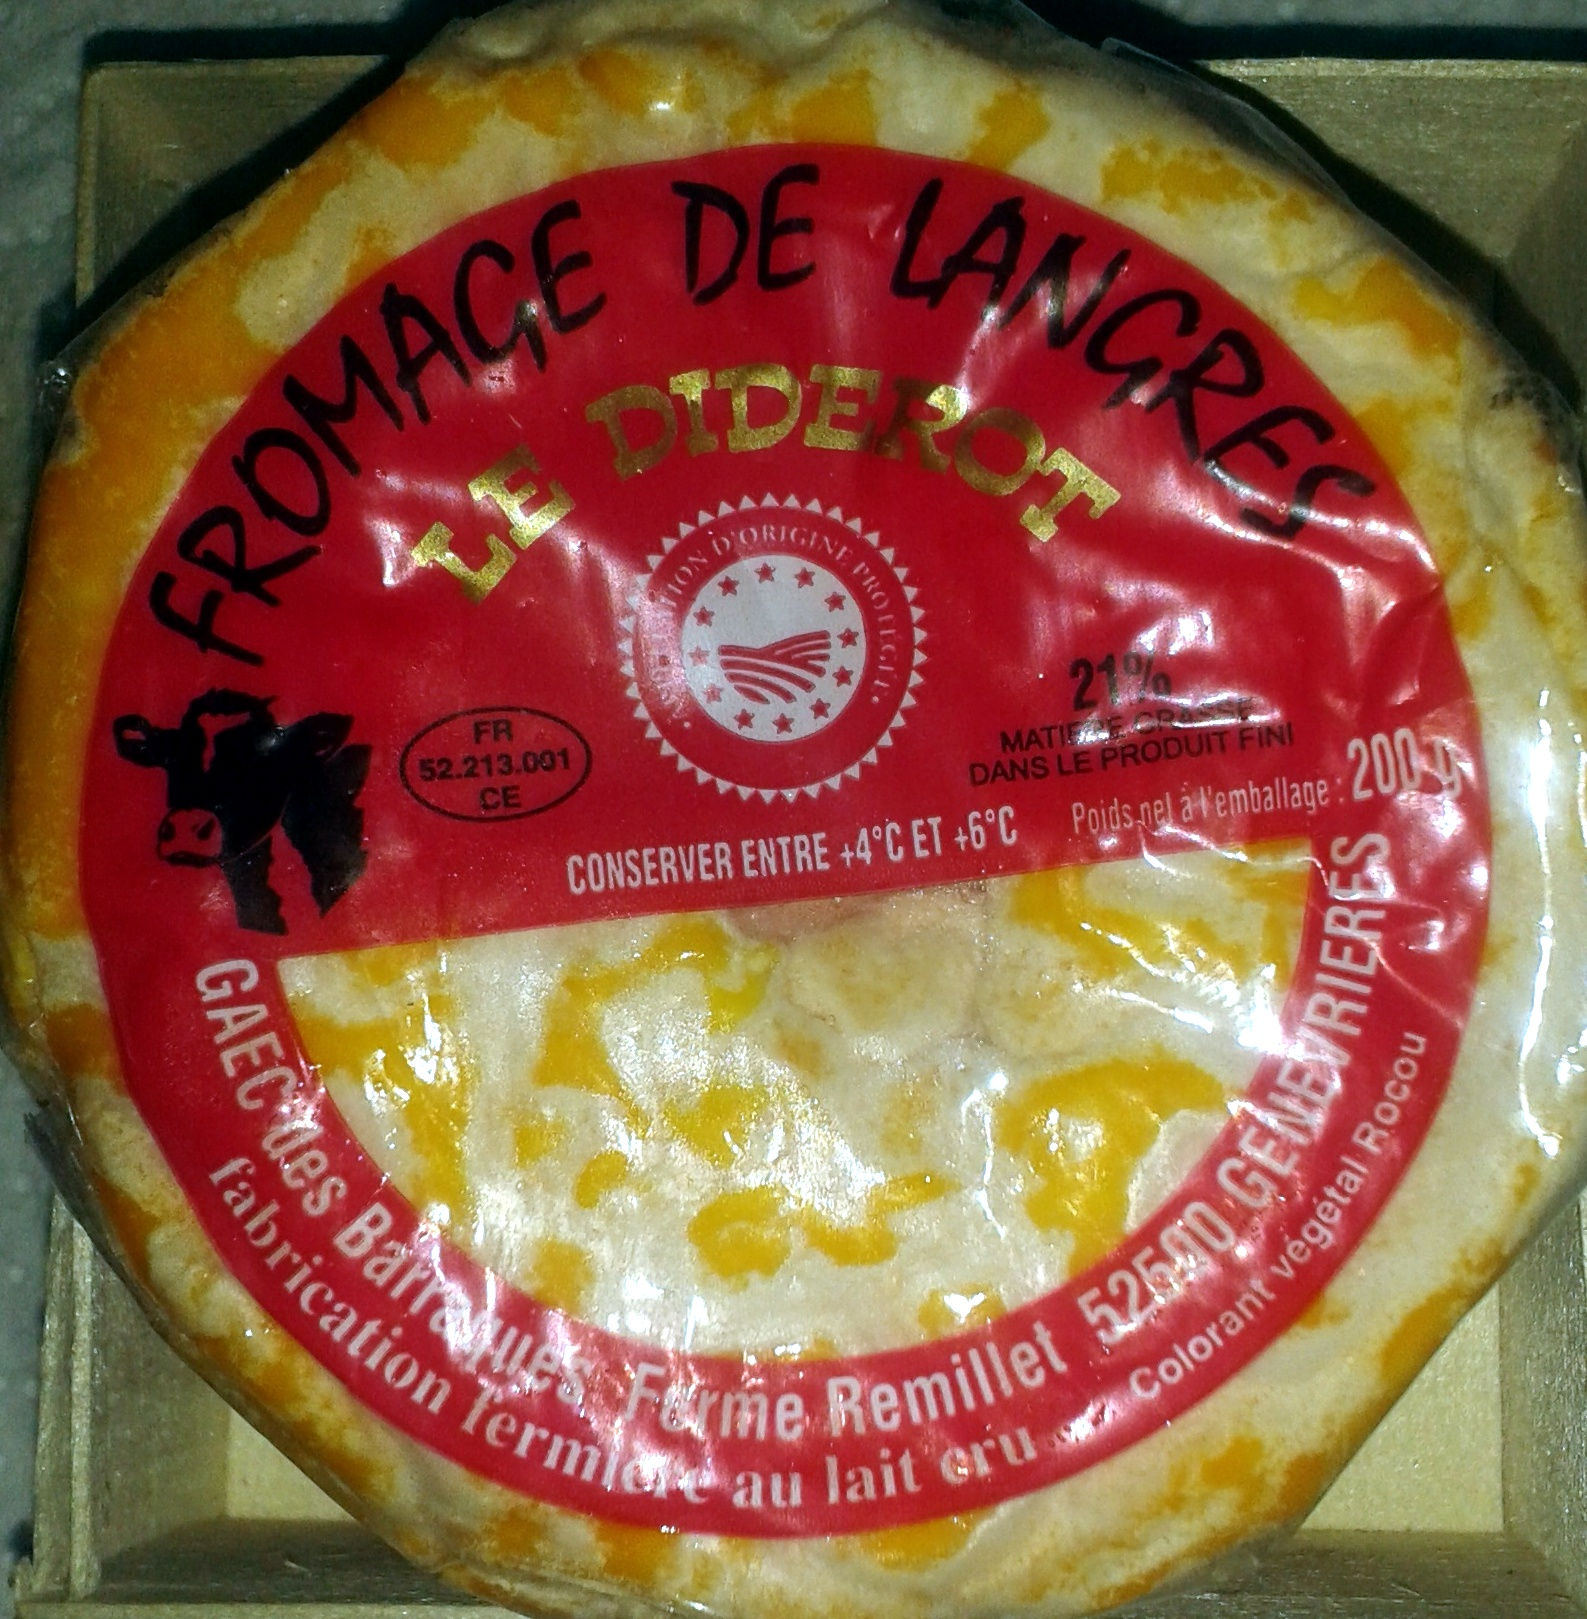 Fromage de Langres AOP (21% MG) - Producto